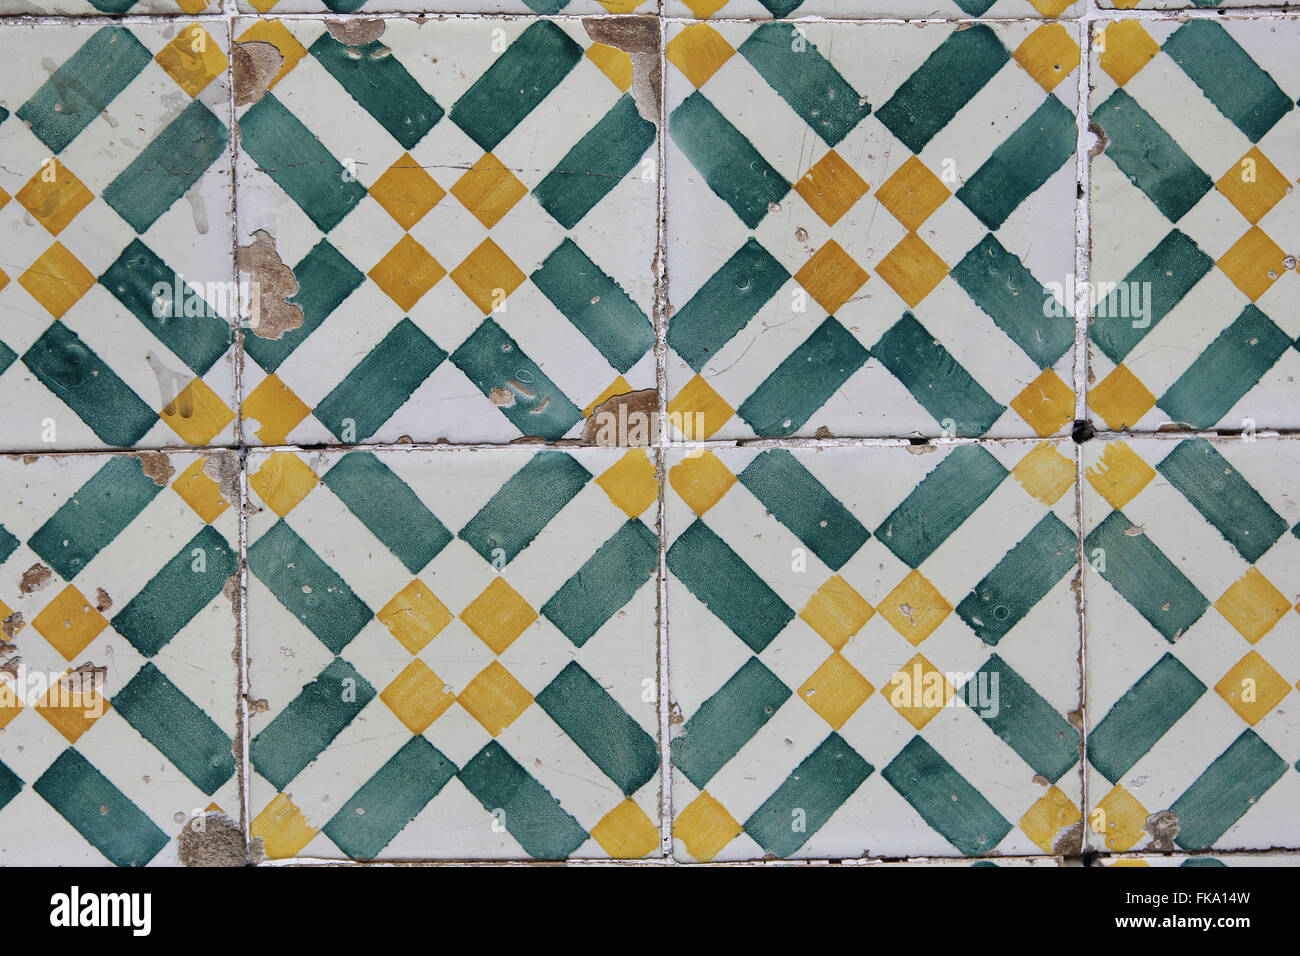 Detail of Portuguese tiles in the nineteenth century mansion in the city center - Stock Image